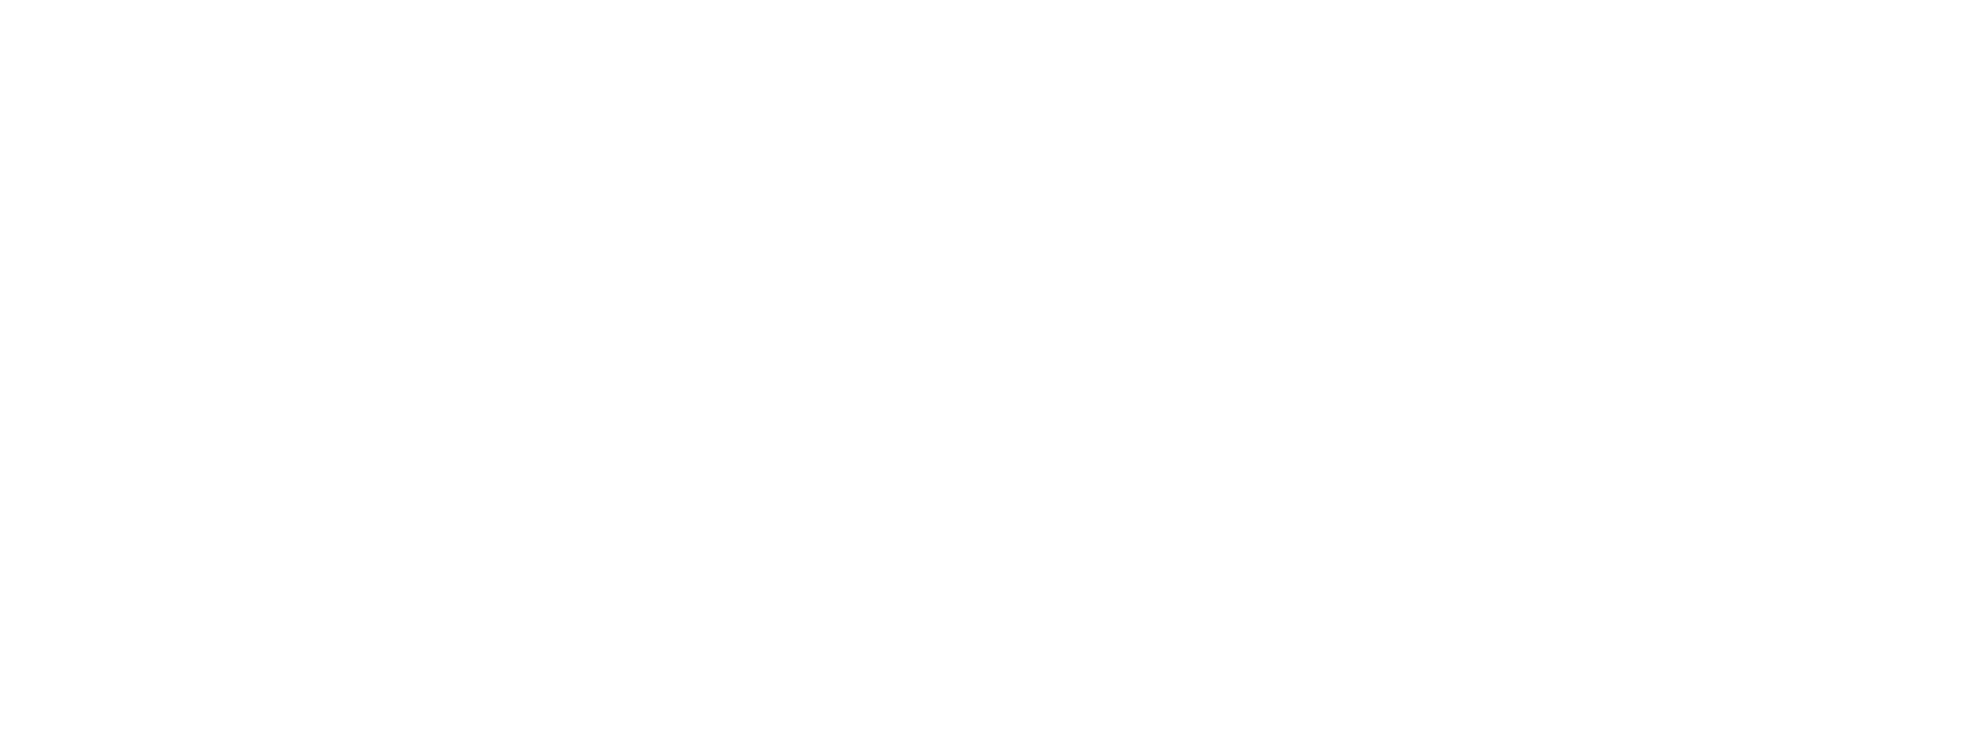 زیباشو دات کام